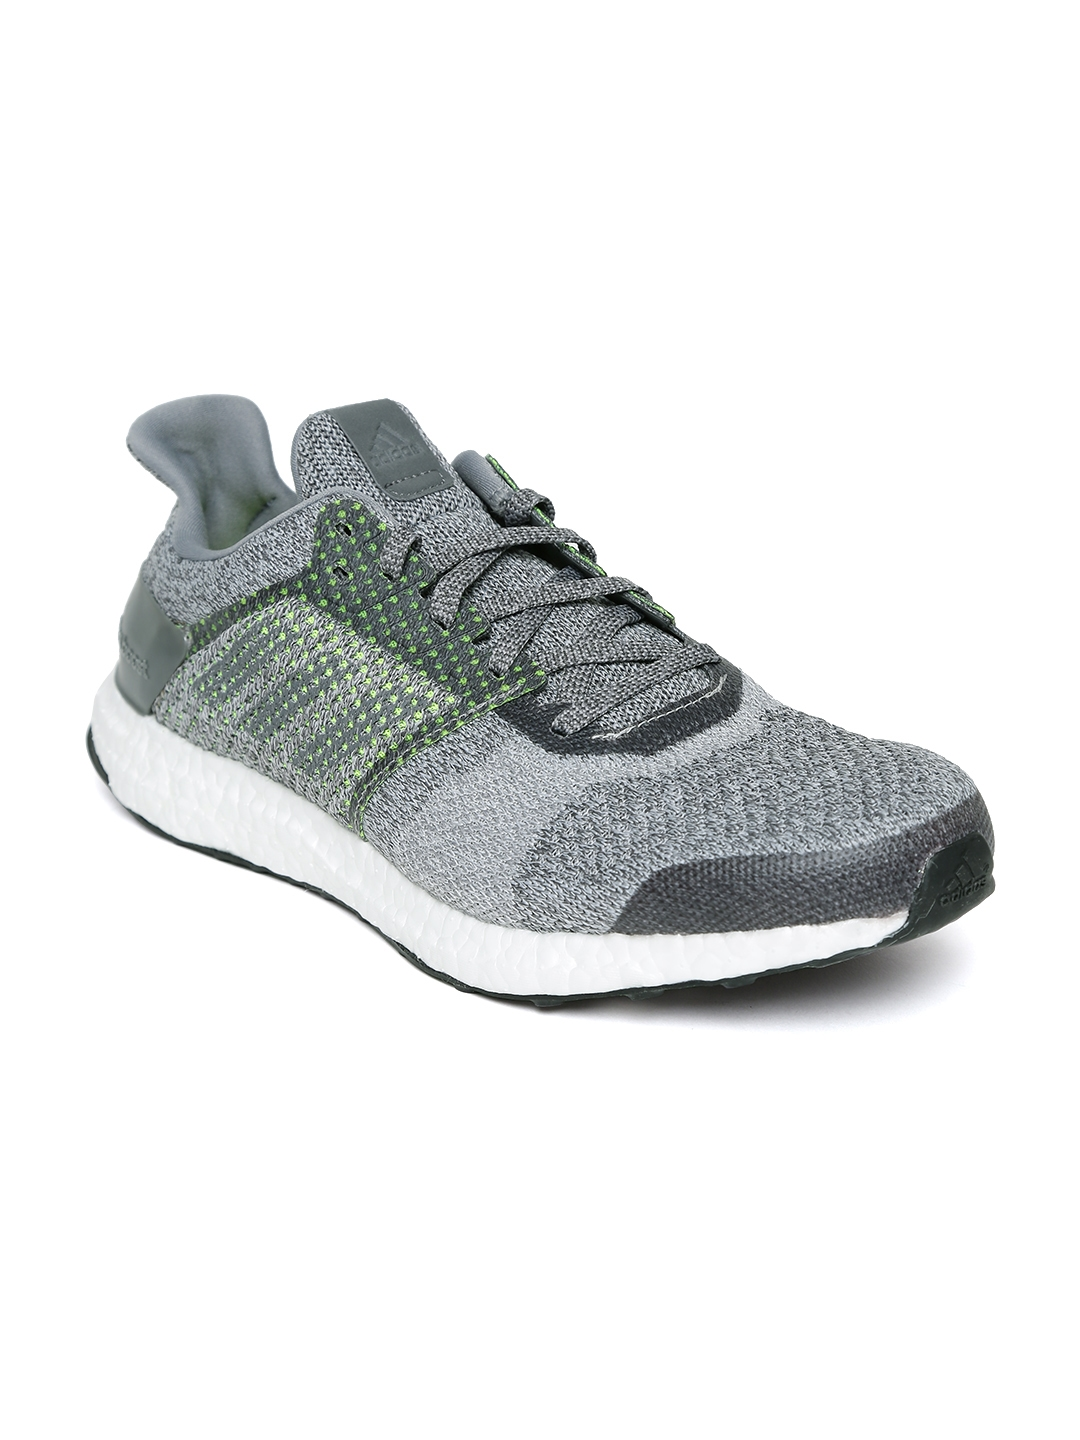 9d078b54d0eb1 Buy ADIDAS Men Grey ULTRABOOST Street Running Shoes - Sports Shoes ...